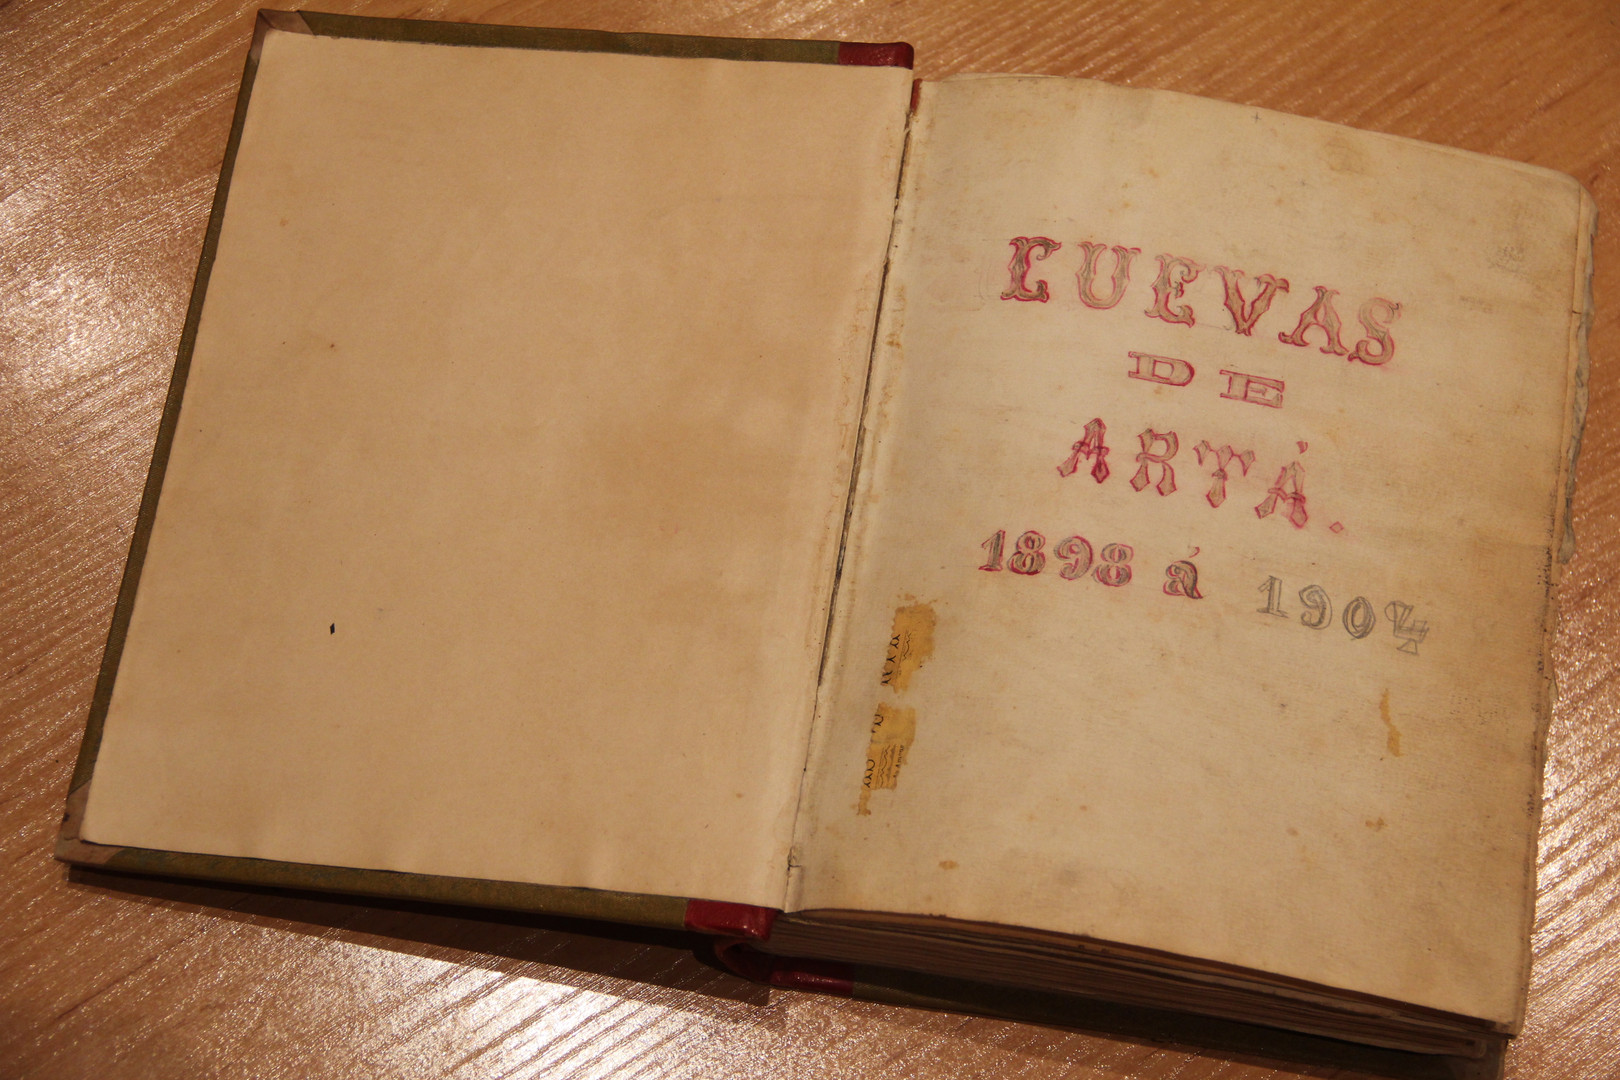 """Volume of the Caves of Artà visitors' book corresponding to the period when they were visited by the expeditioners on the """"San Miguel"""" (courtesy of the Caves of Artà)."""